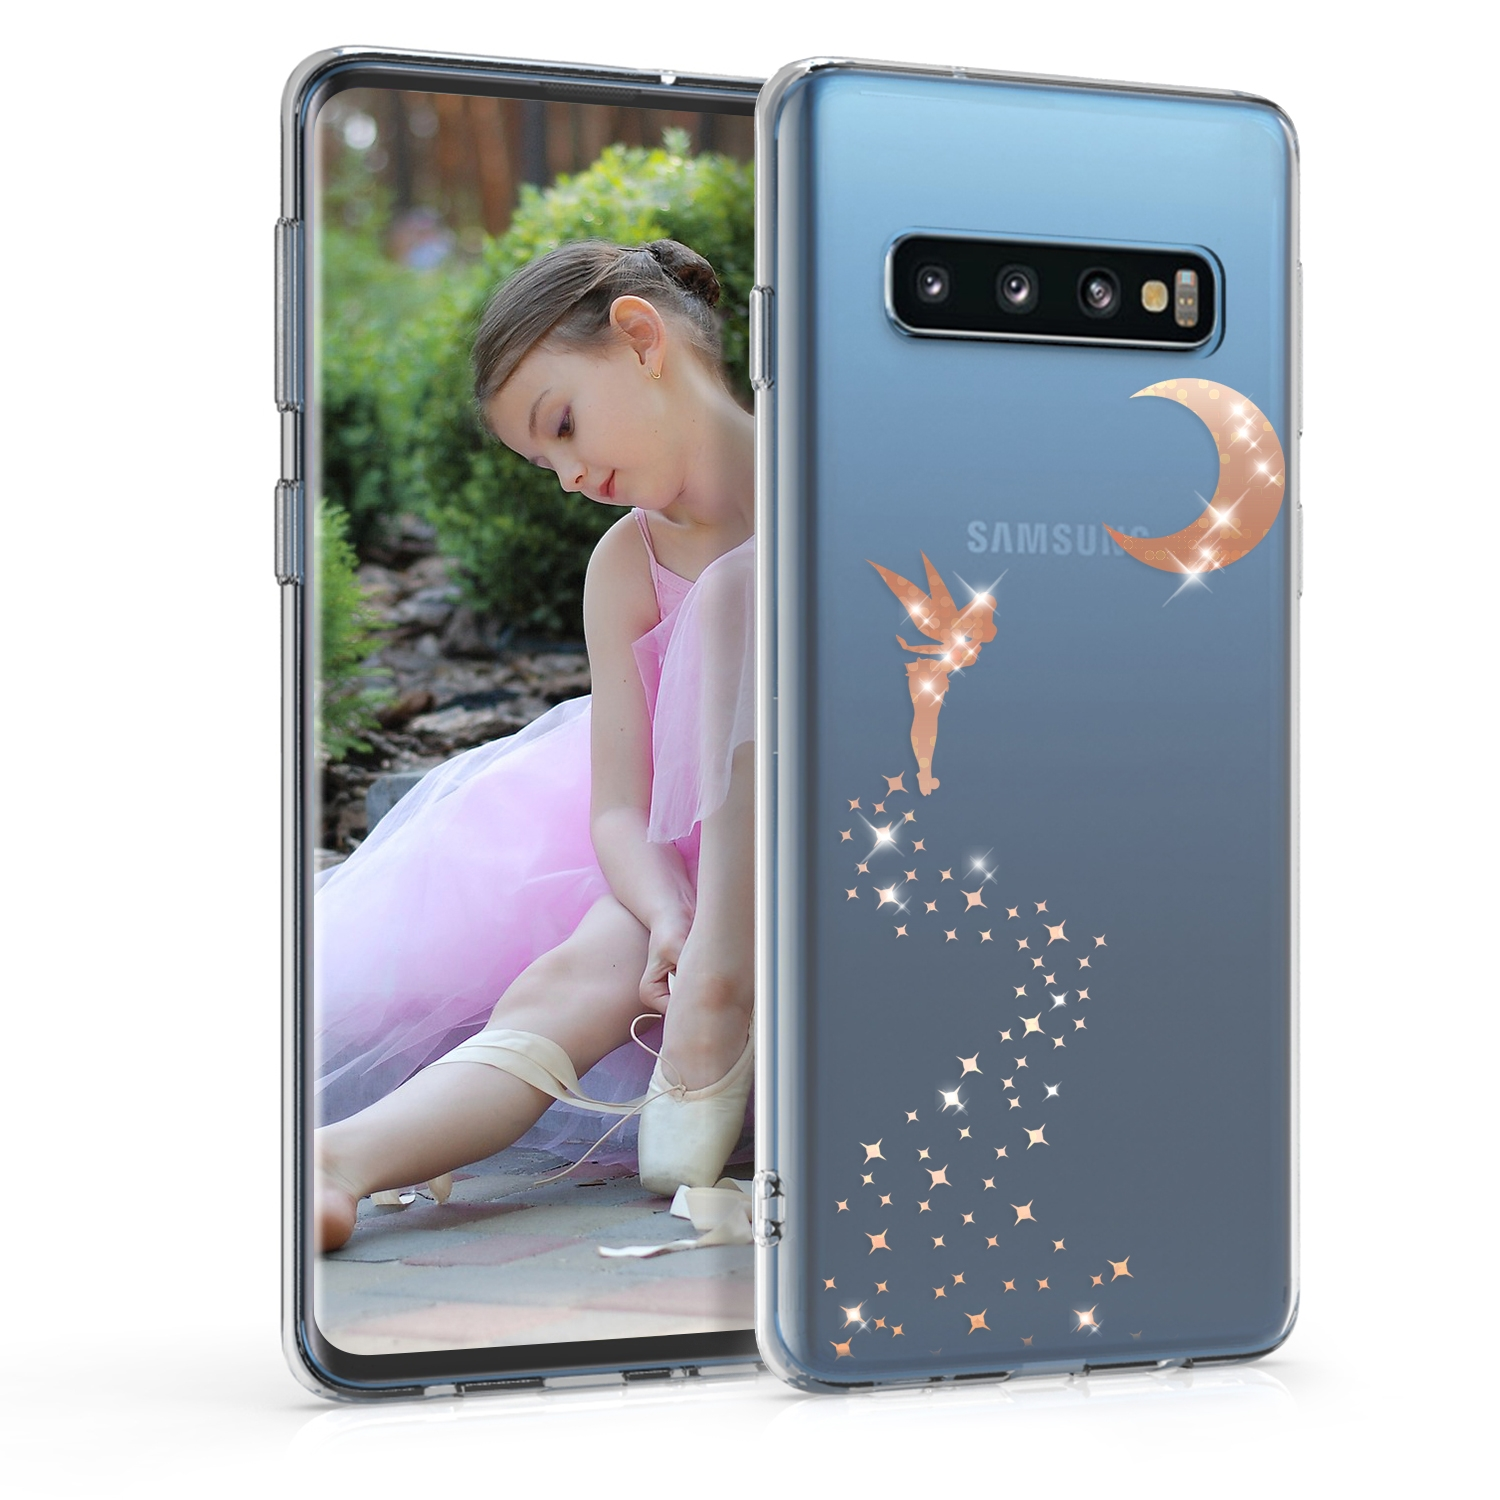 KW Θήκη Σιλικόνης  Samsung Galaxy S10 - Rose Gold / Transparent (47449.01)